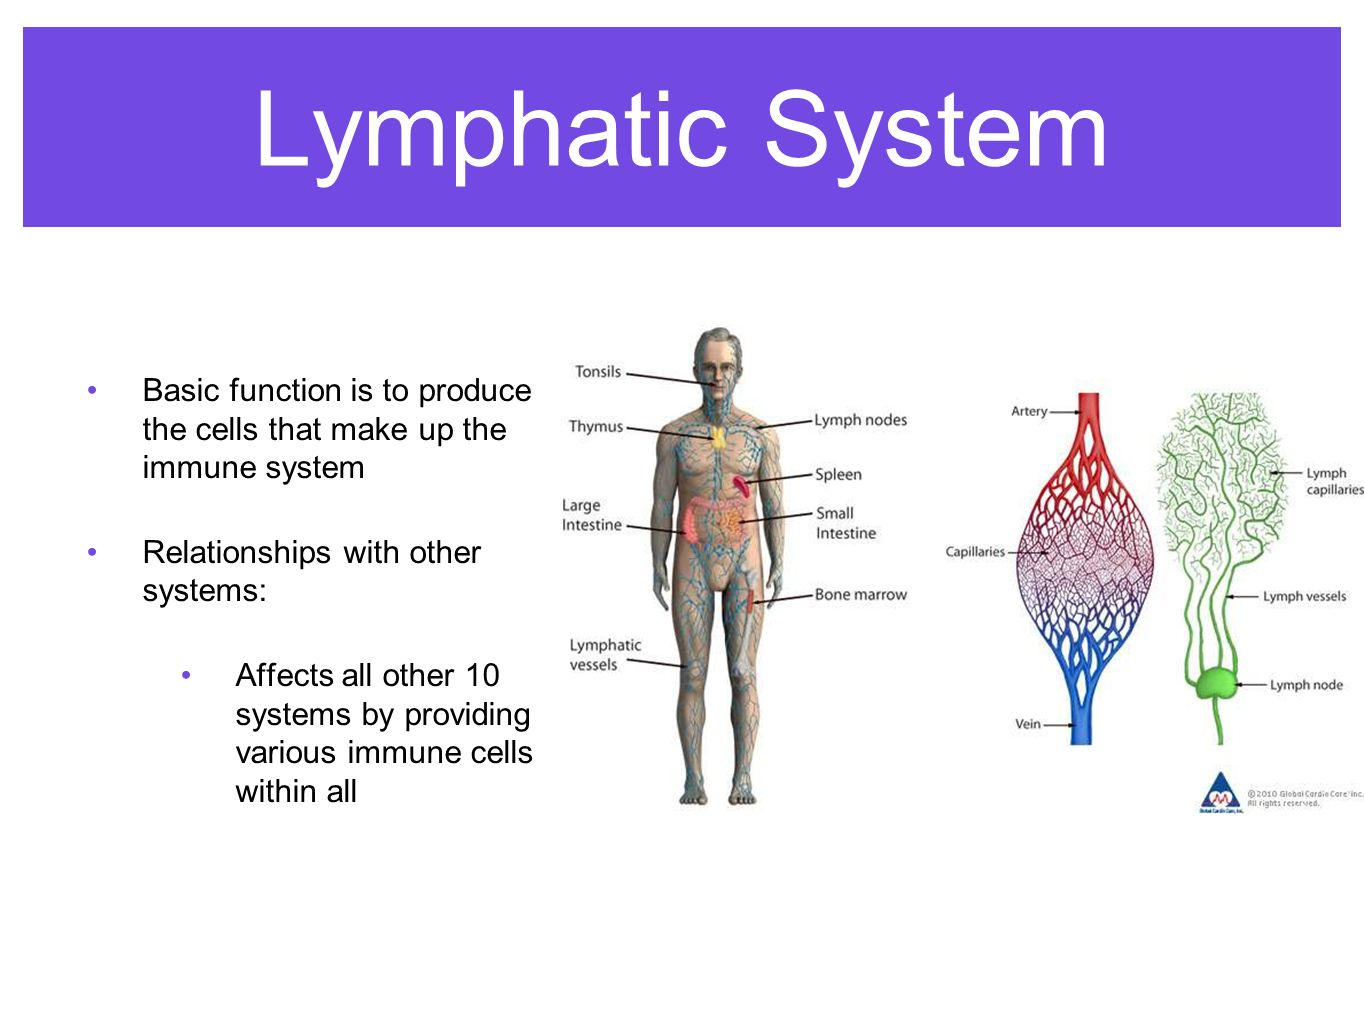 Lymphatic System Works With Other Systems Erkalnathandedecker